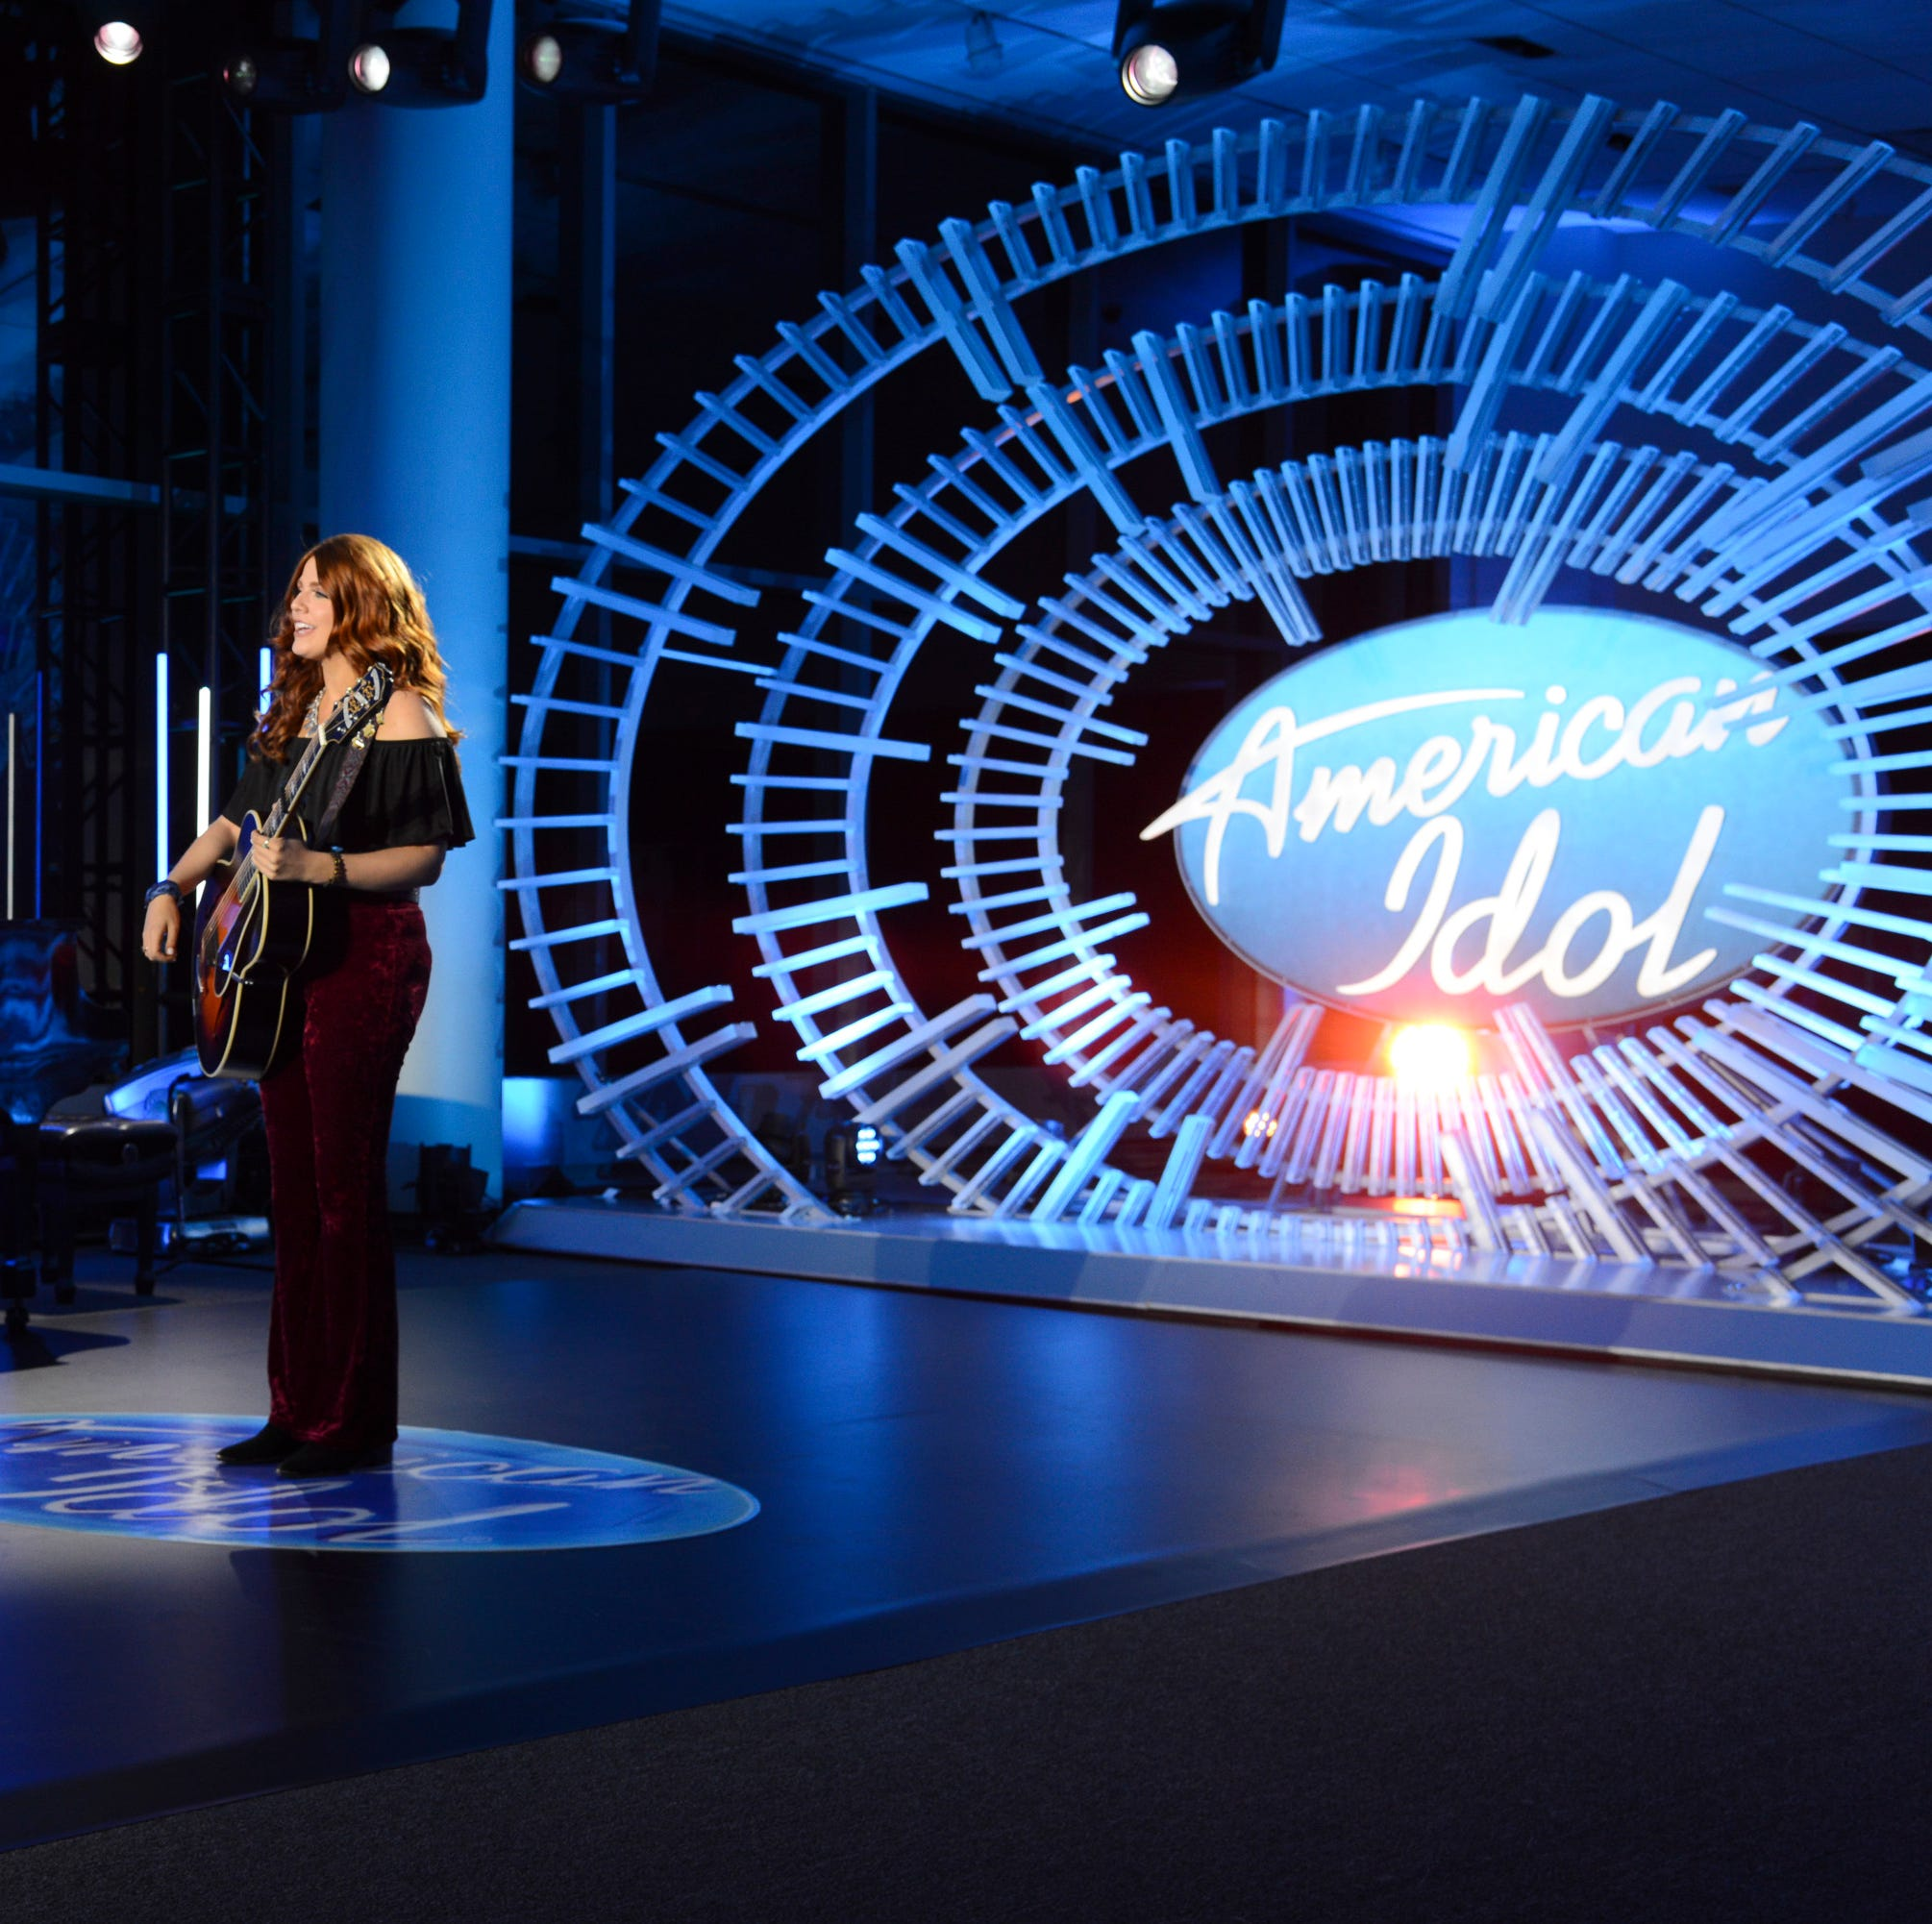 South Jersey native Payton Taylor's 'American Idol' audition to air Monday